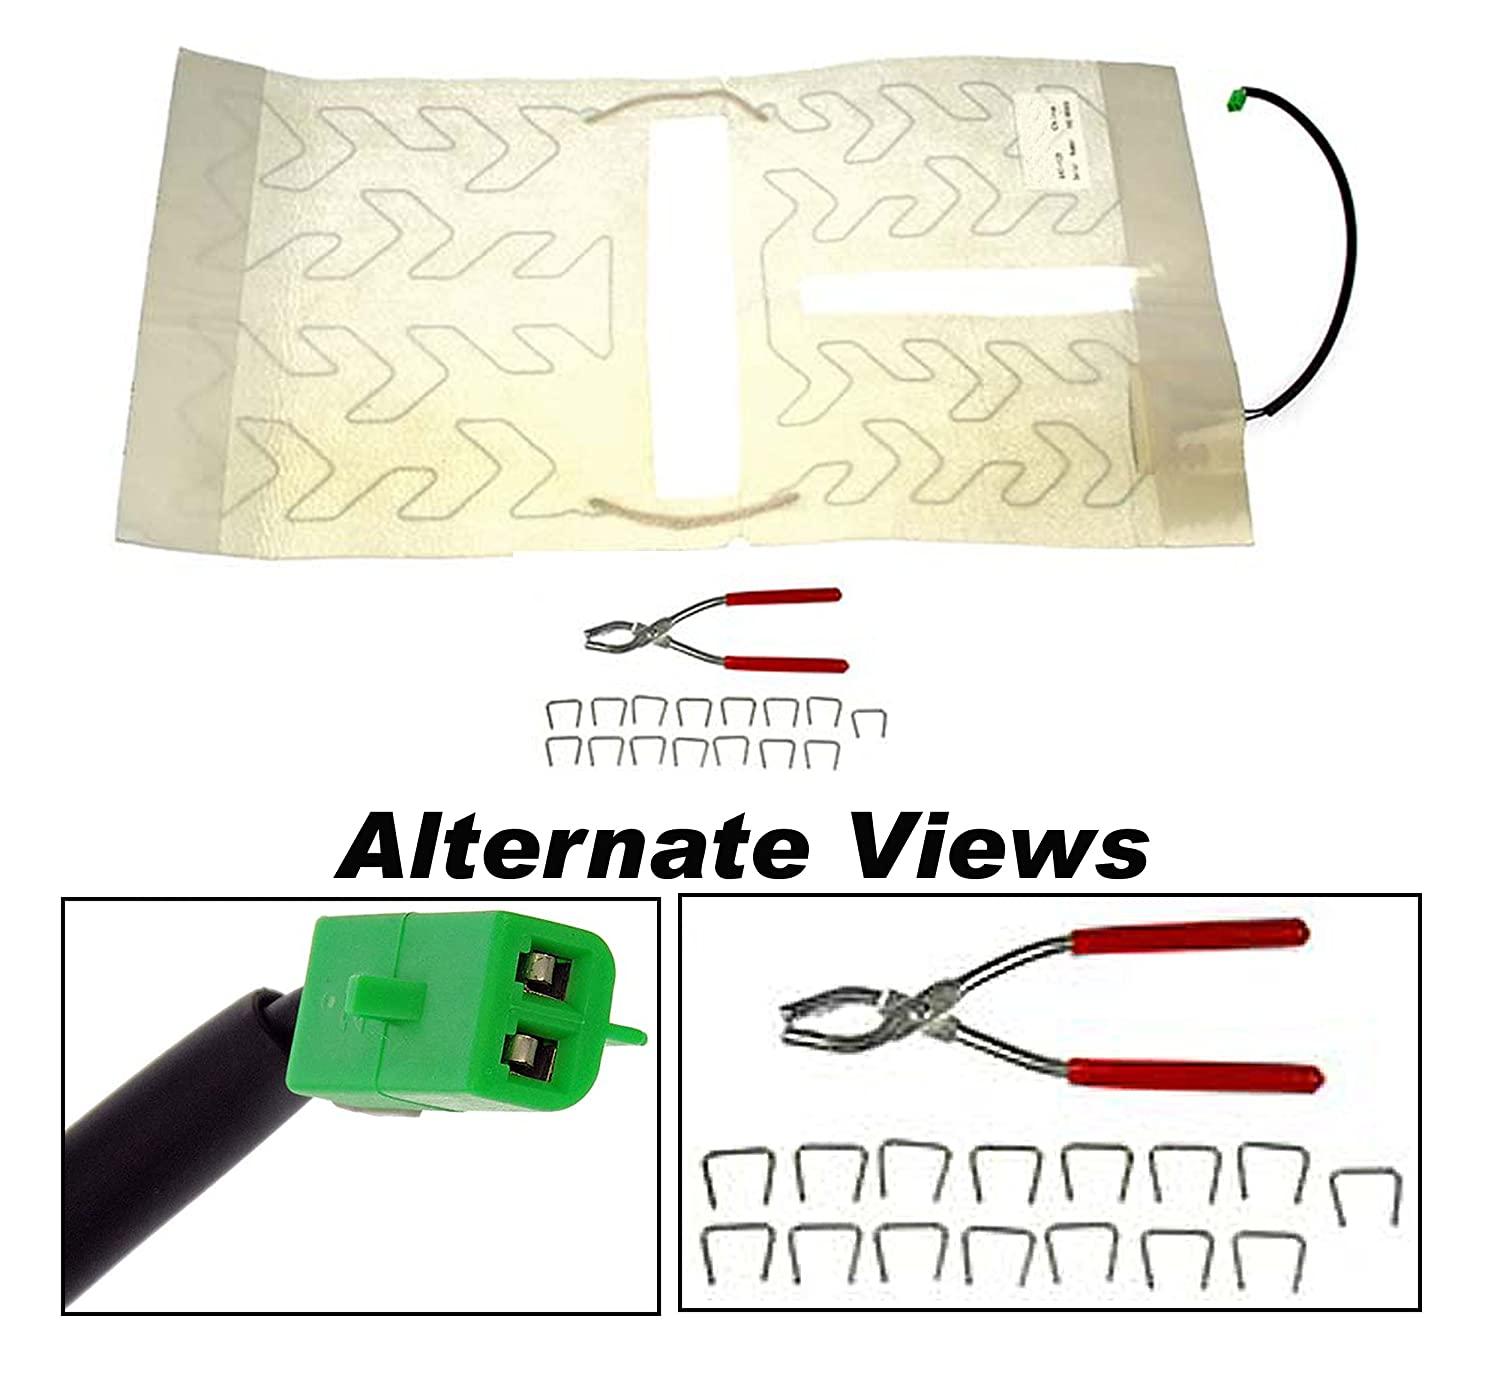 APDTY 752216 Bottom Lower Seat Heater Pad Front Left/Right Fits Select 2003-2008 Cadillac Escalade/Chevrolet Avalanche, Silverado, Tahoe/GMC Sierra, Yukon (Replaces 88940288, 88940309)